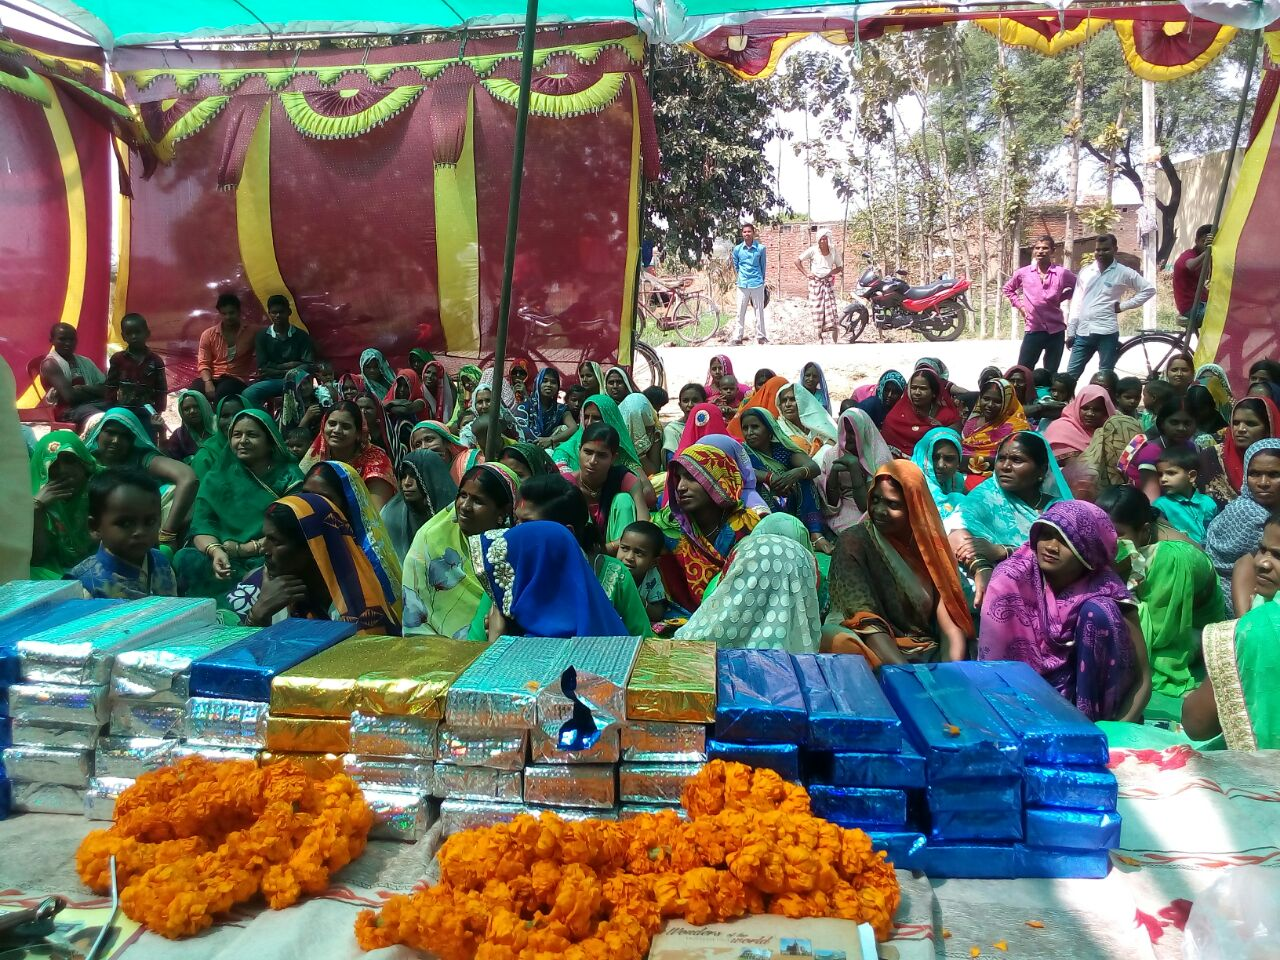 Bihar continues to take the lead in organising Saas Bahu Sammelans across districts. This time in Gildah, Narkatiaganj, Madhepura, Samastipur, Buxar and Banka.